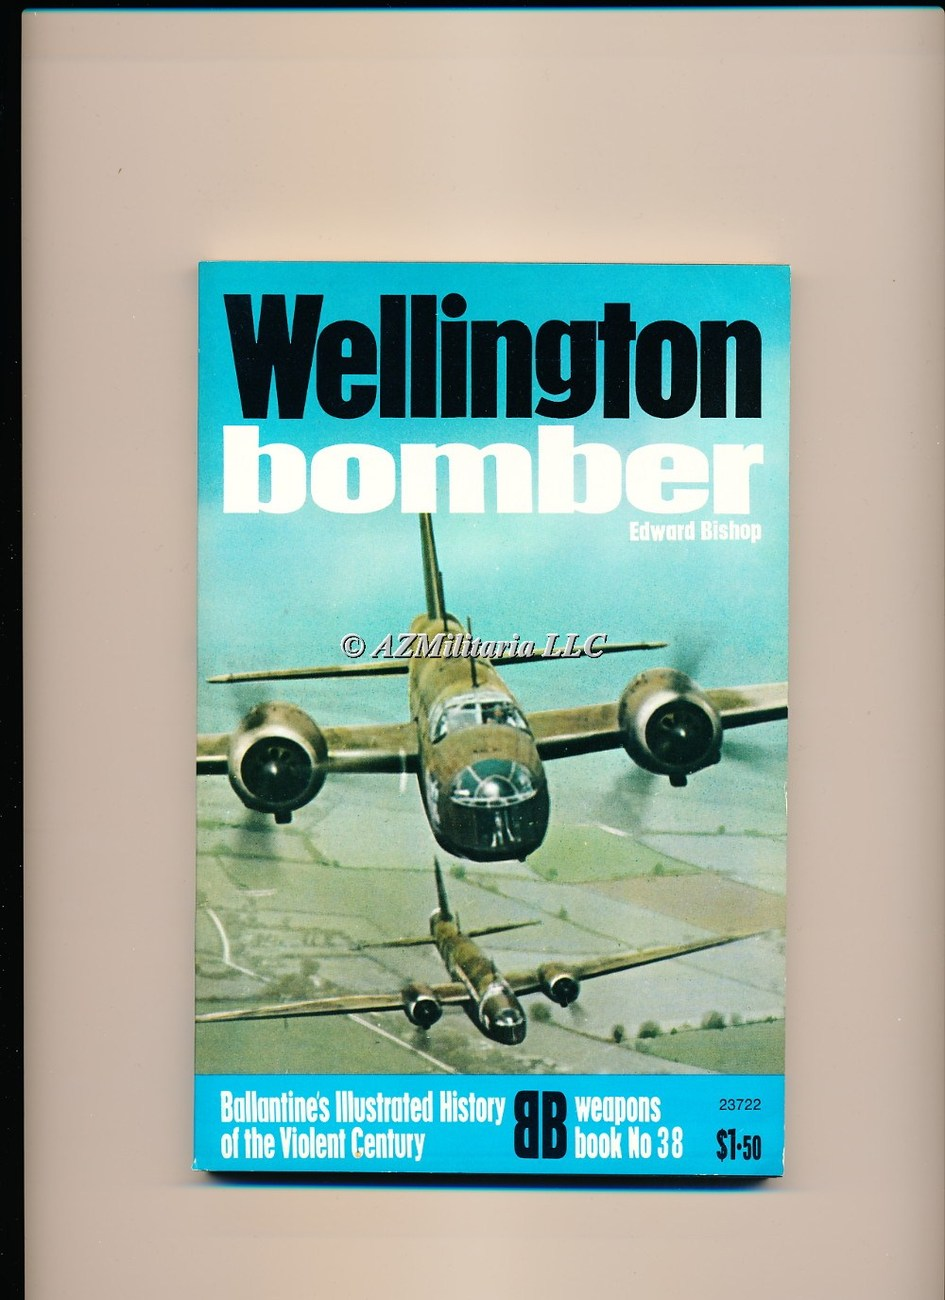 Wellington Bomber (Weapons Book, No 38)